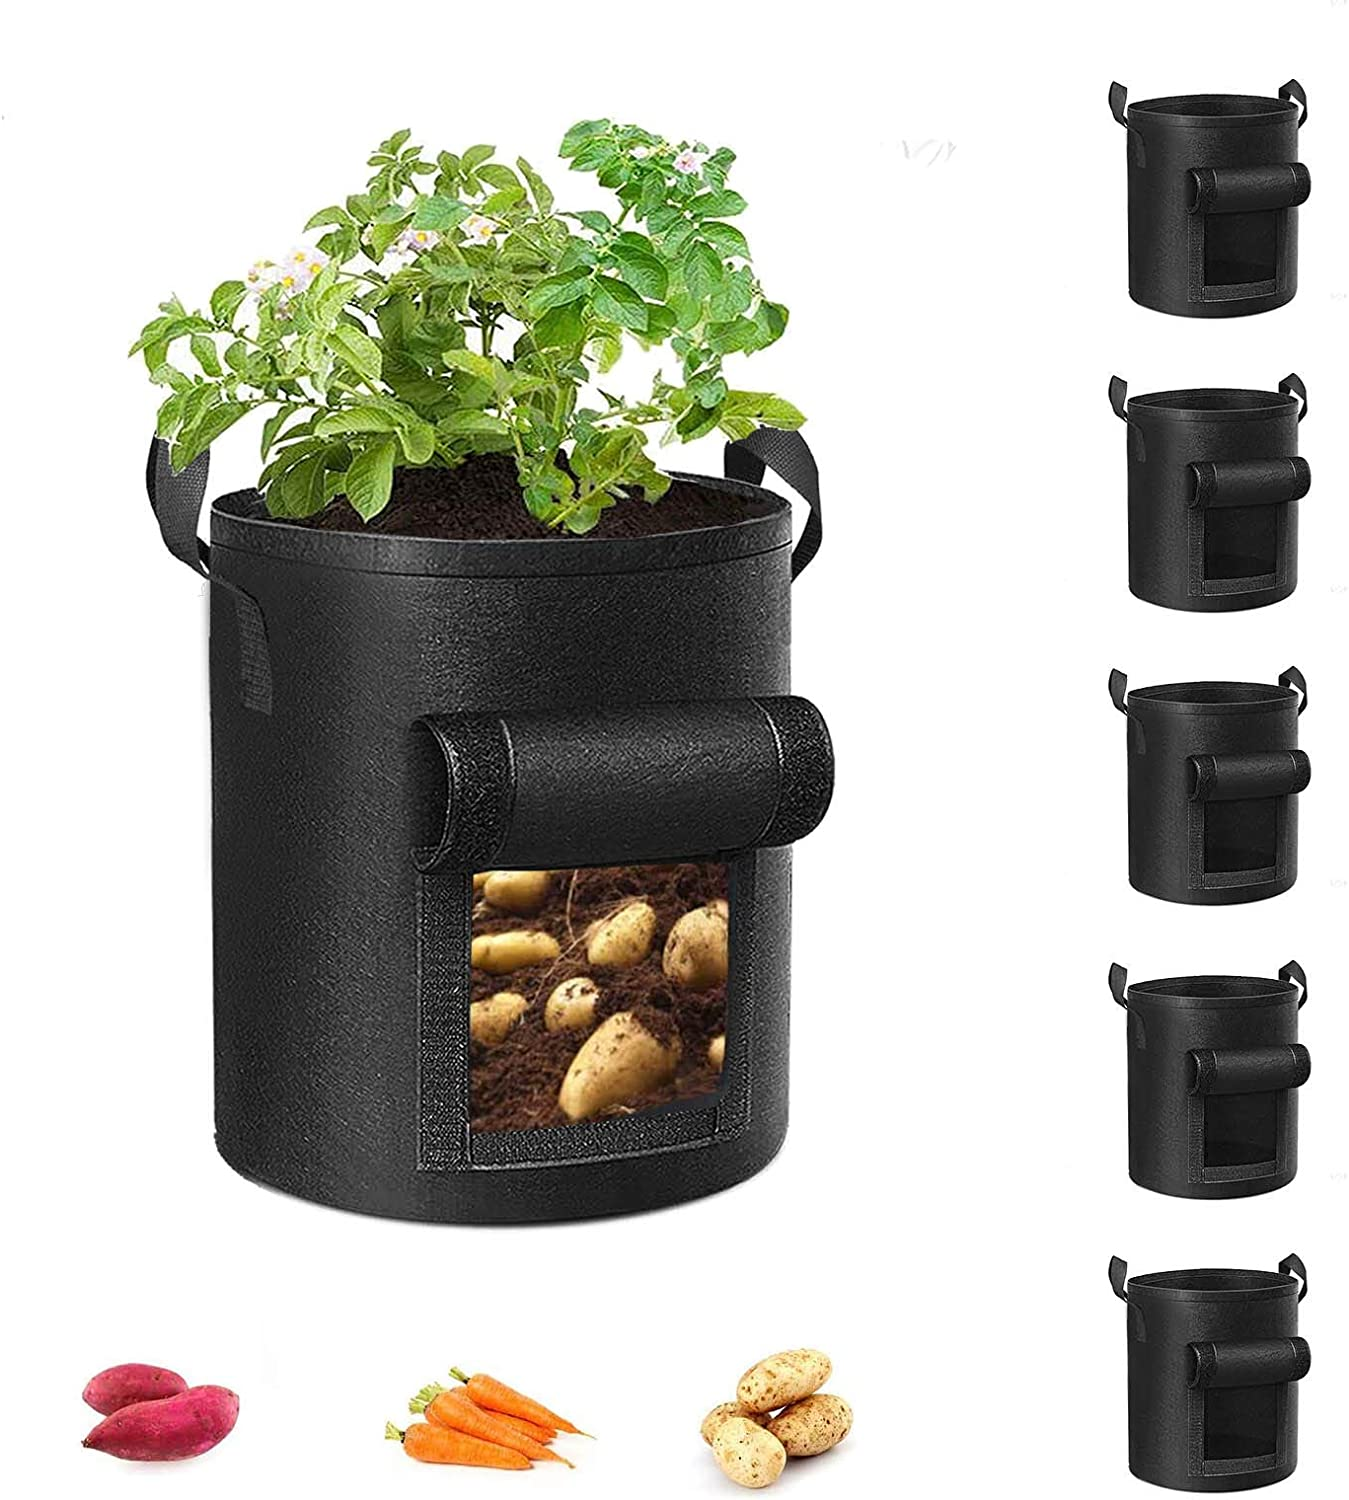 Cavisoo 5-Pack 10 Gallon Potato Grow Bags, Velcro Window Garden Planting Bag with Durable Handle, Thickened Nonwoven Fabric Pots for Tomato, Vegetable and Fruits